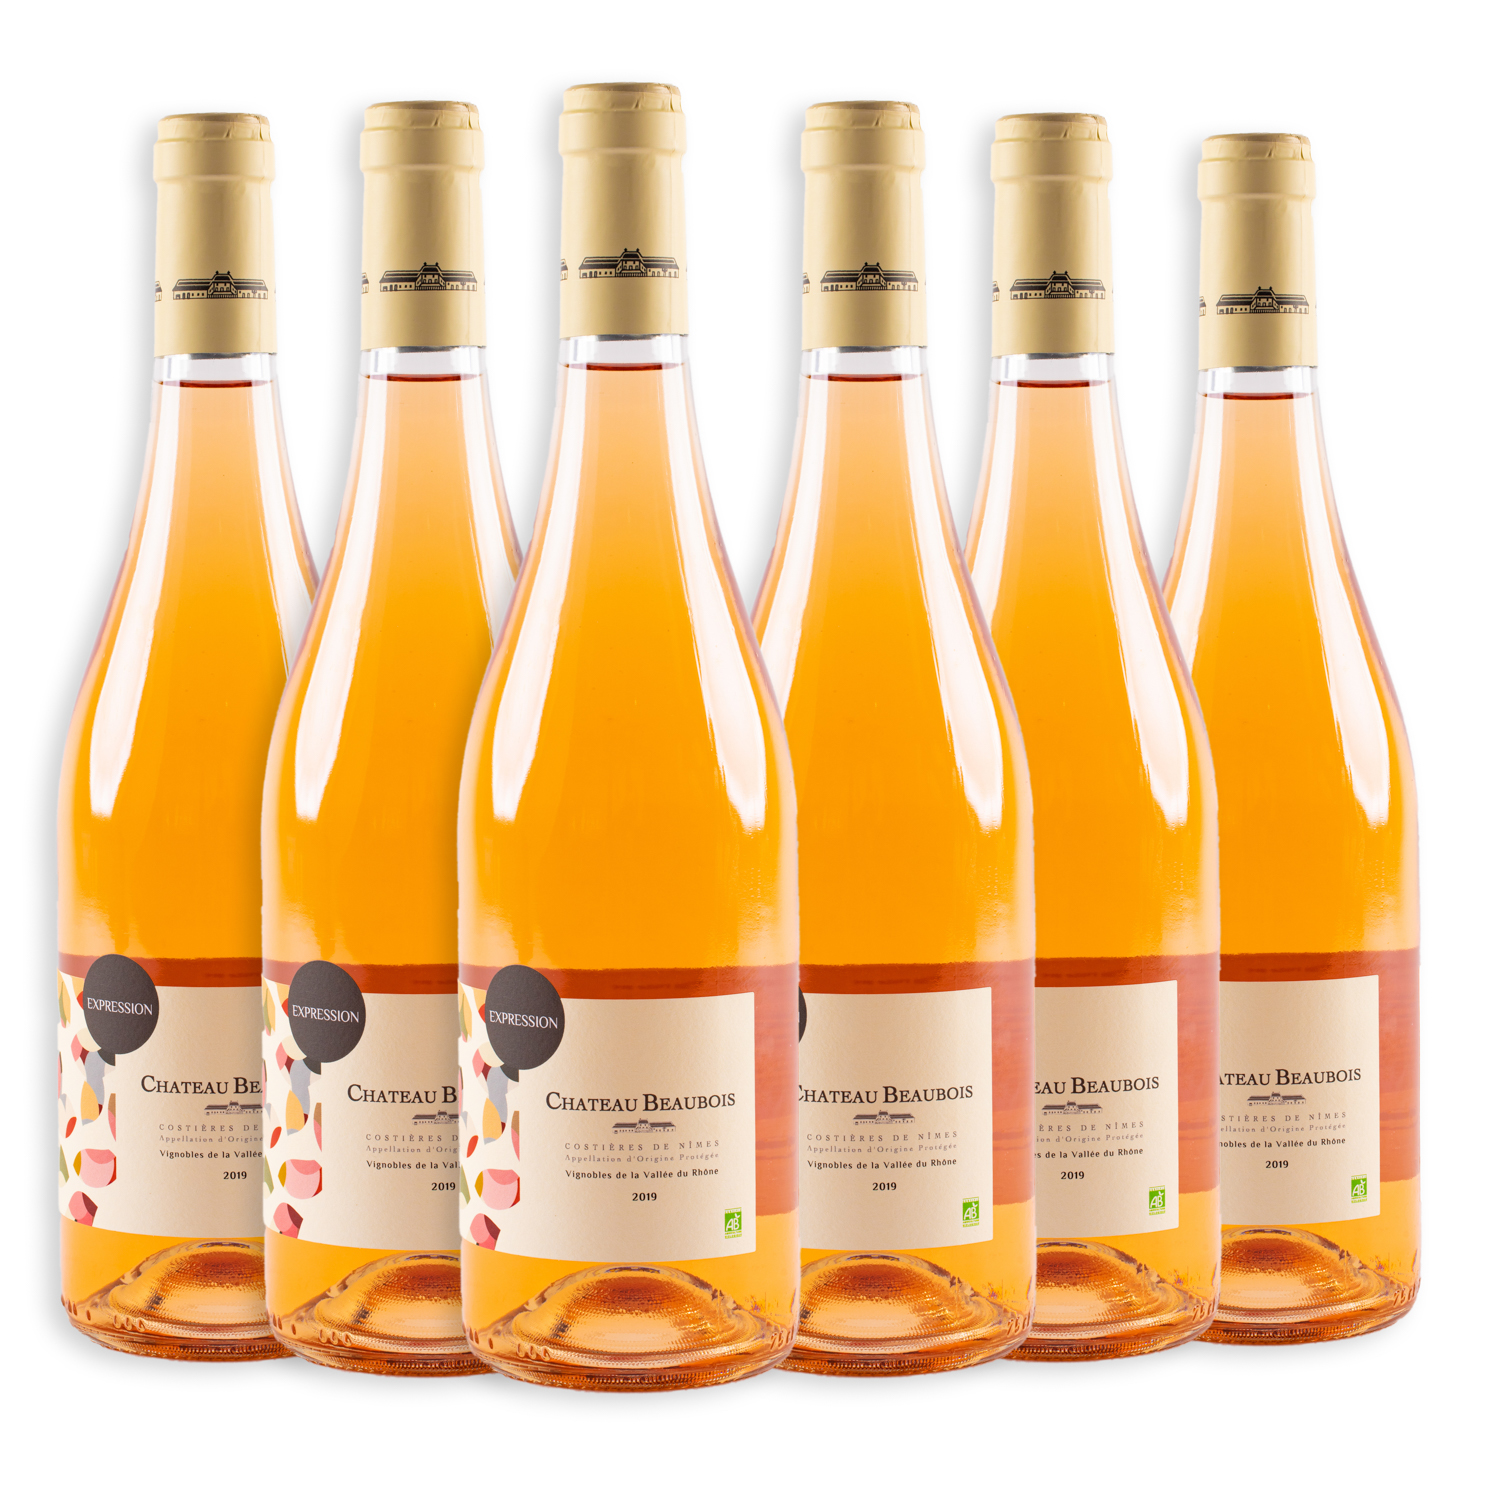 6 sticle x Chateau Beaubois Expression Rose 2019 750ml